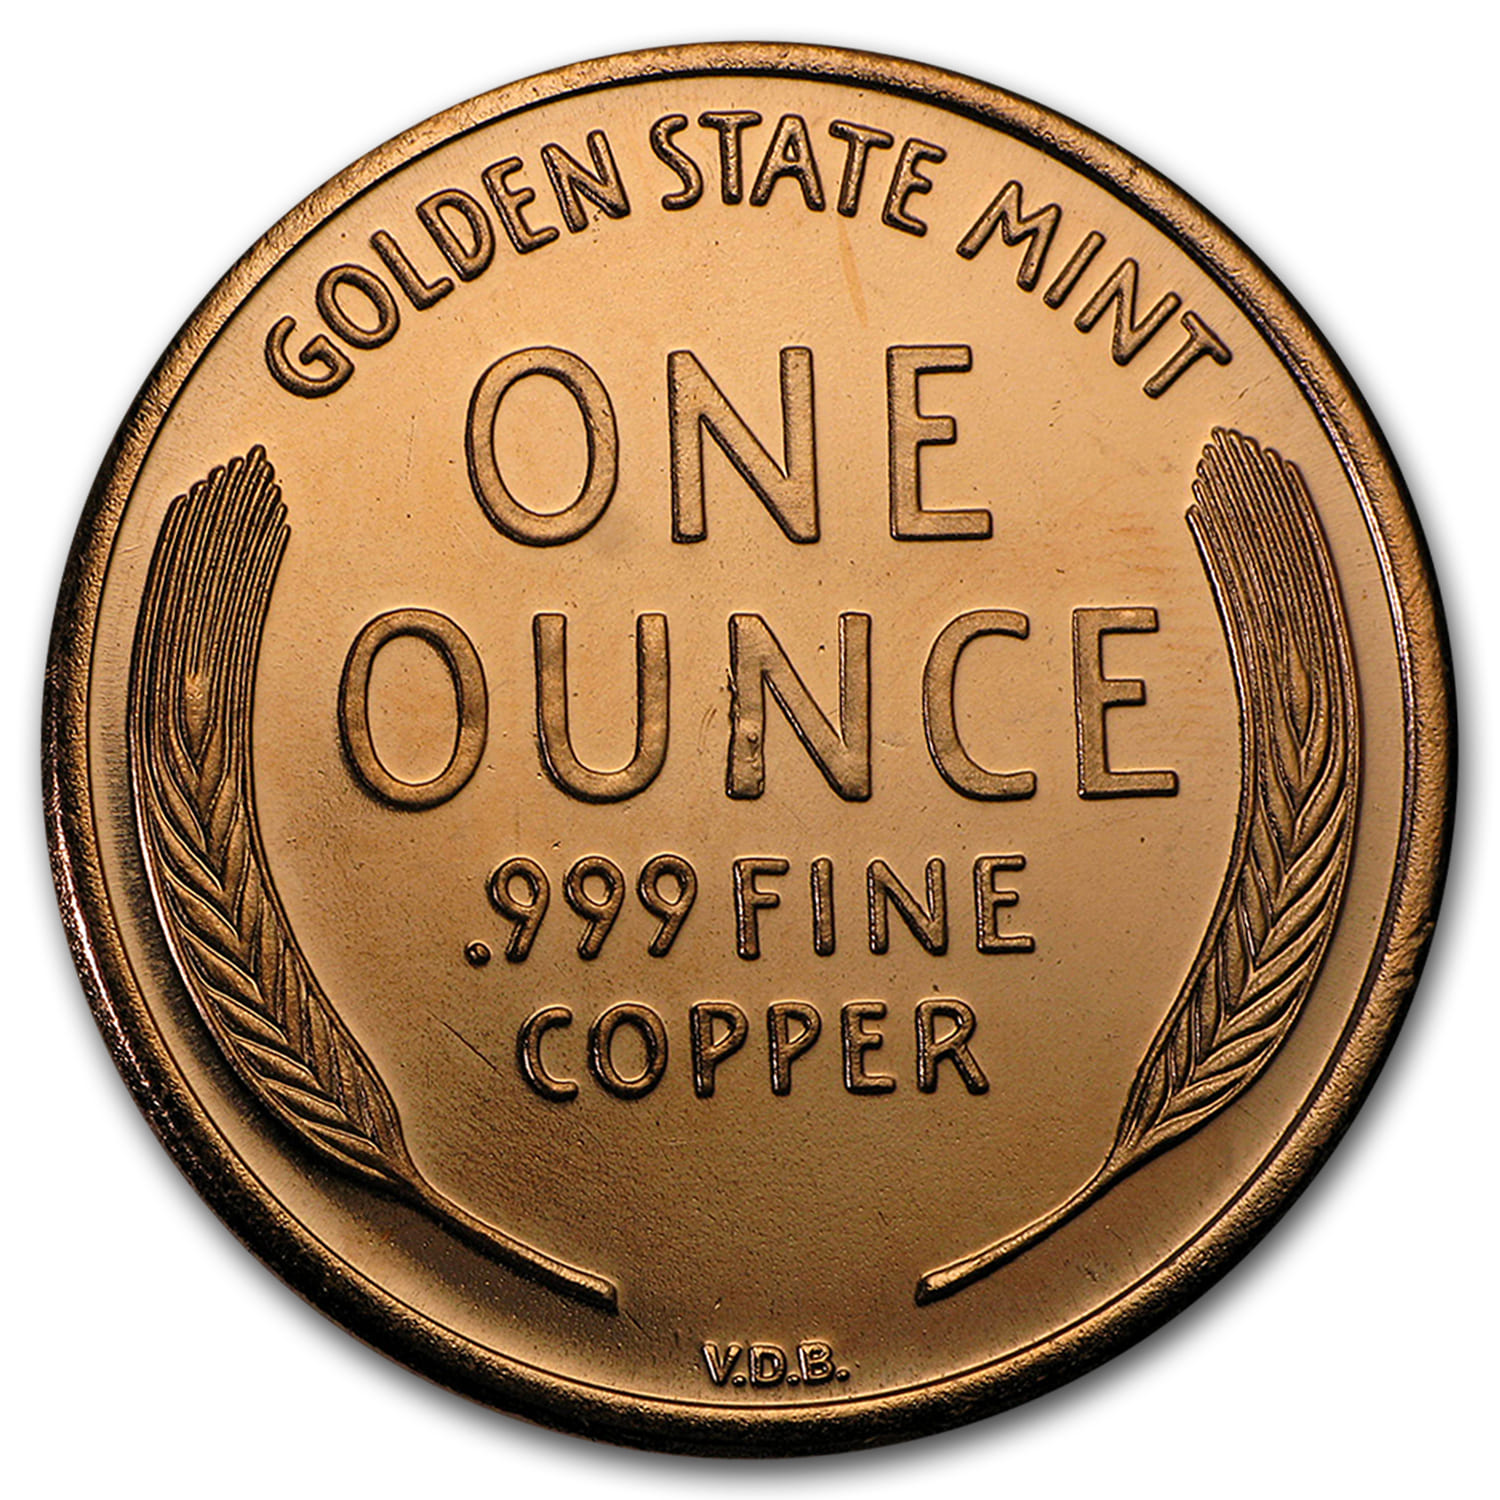 1 Oz Copper Round Non Vi Virtute Vici 1 Oz Copper